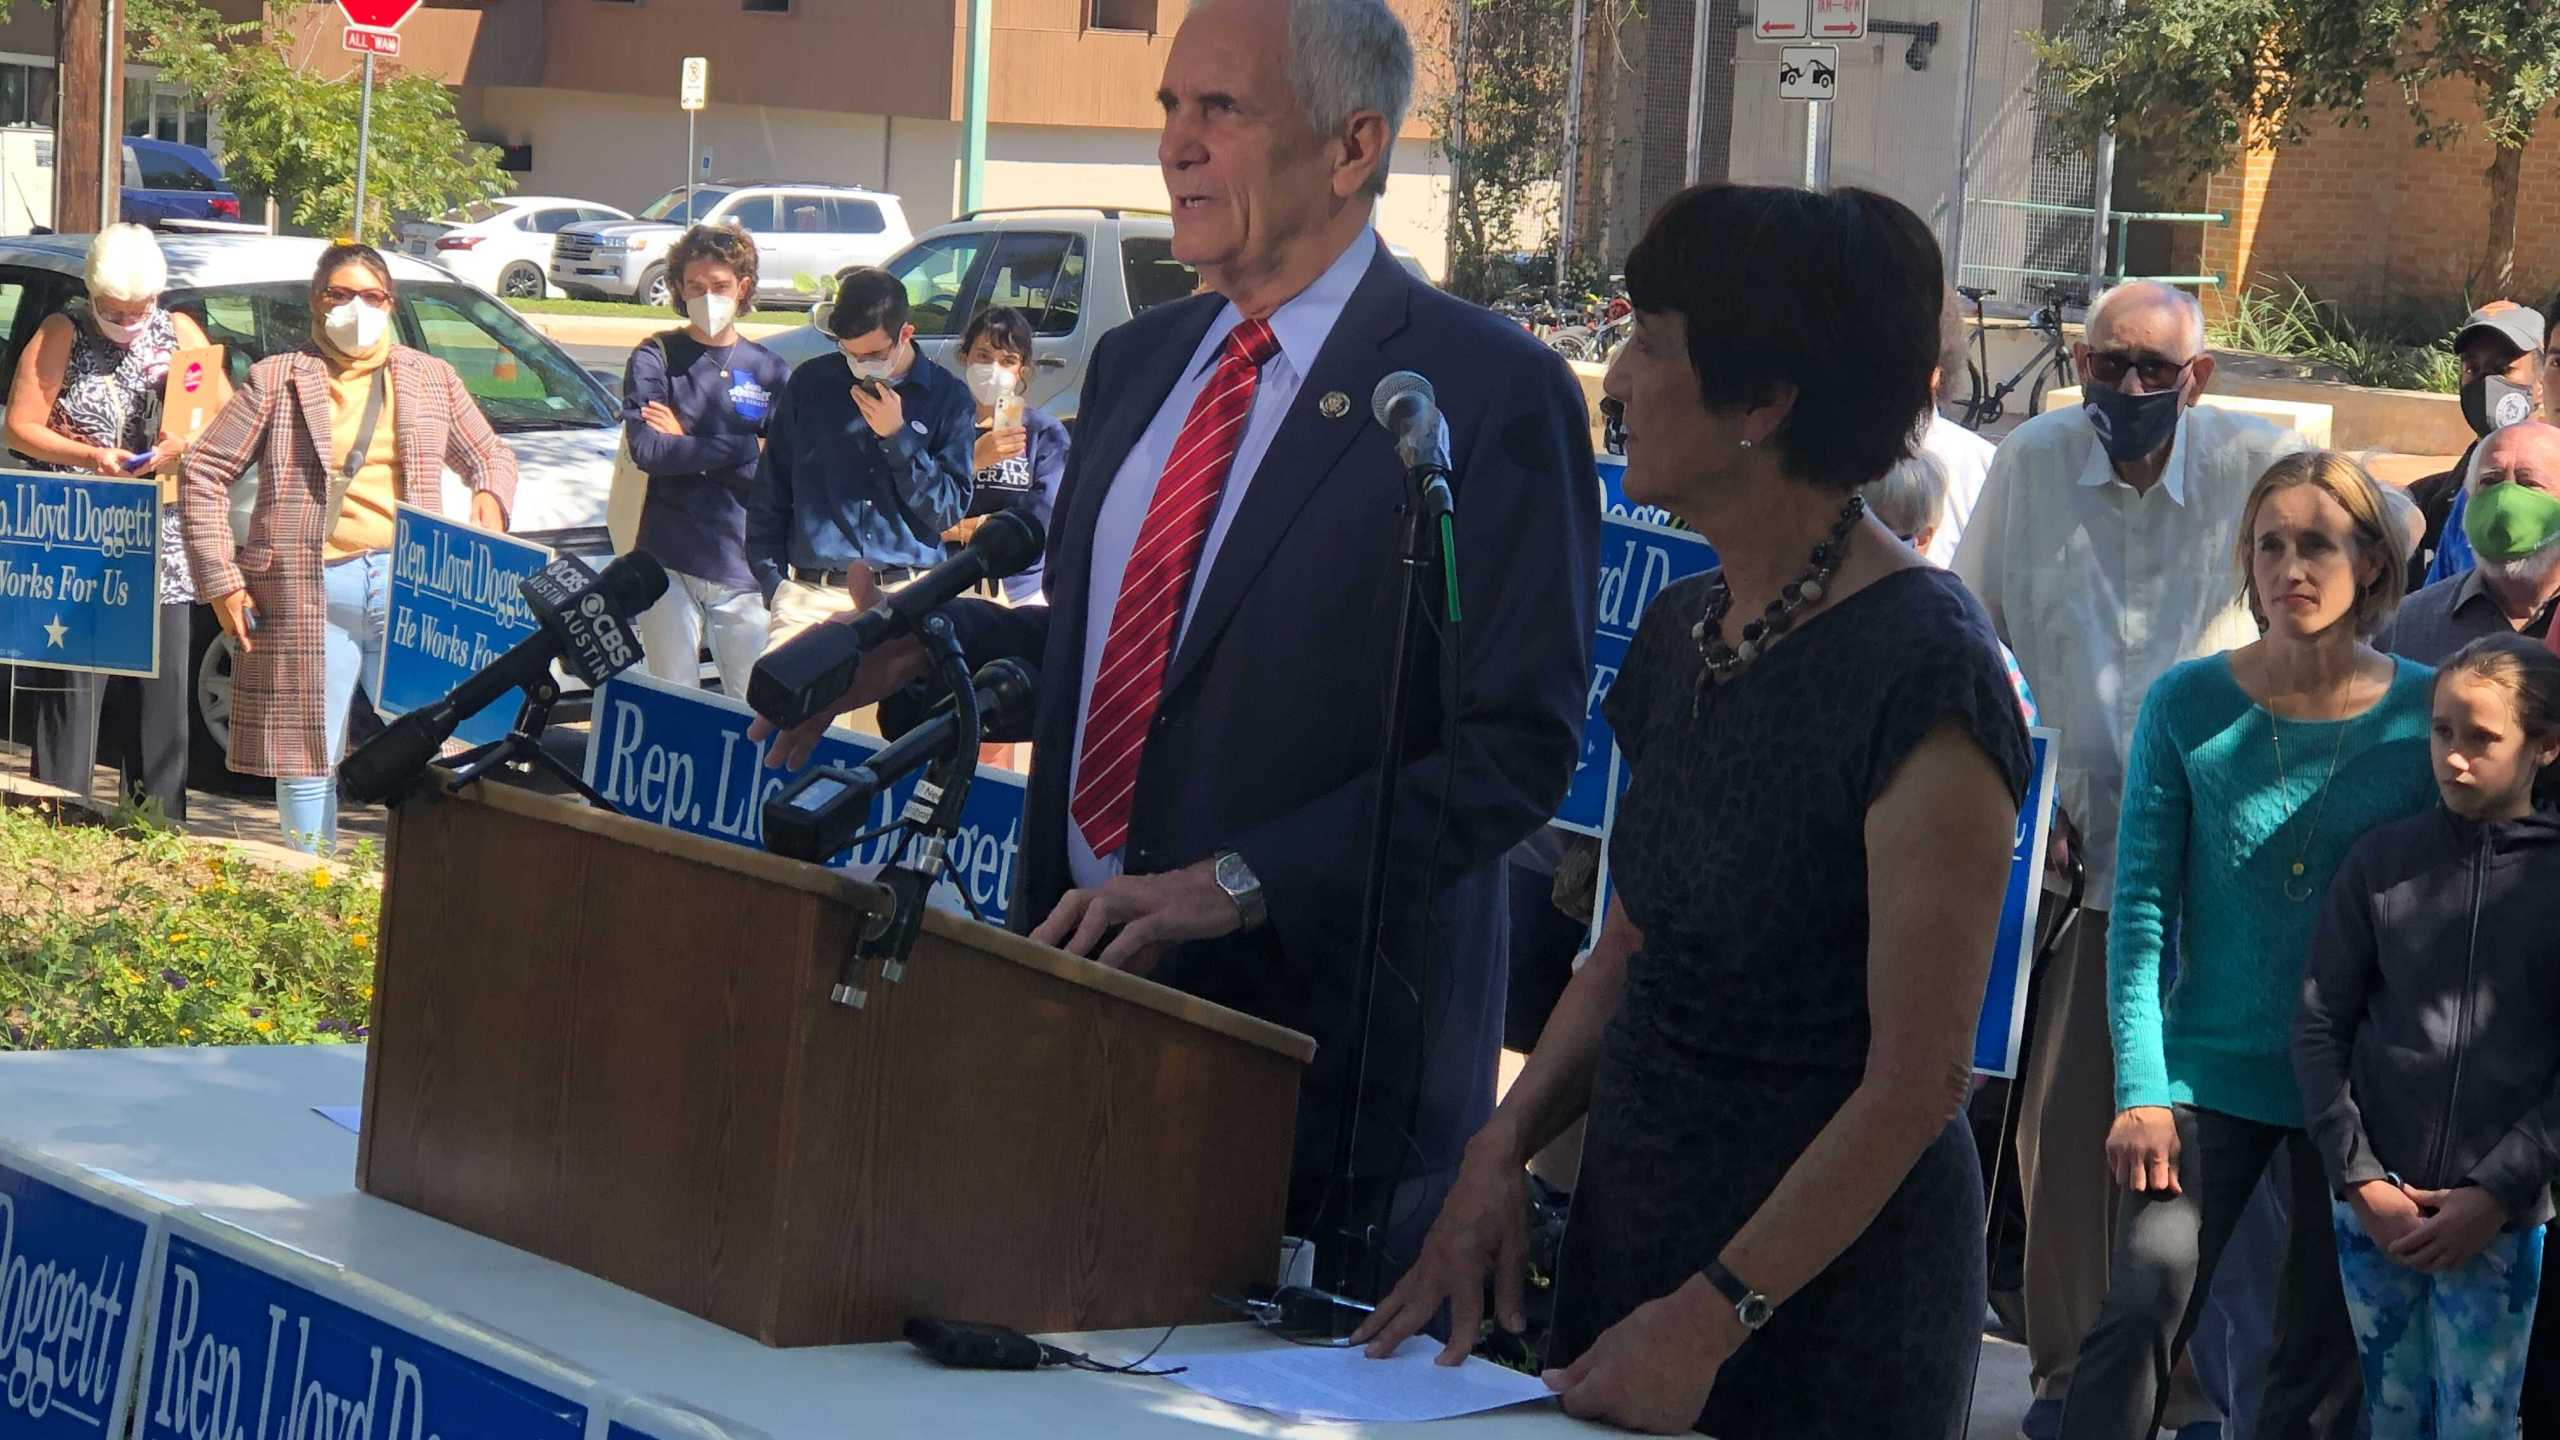 U.S. Rep. Lloyd Doggett is running for reelection in Texas' 37th Congressional District. (KXAN Photo)